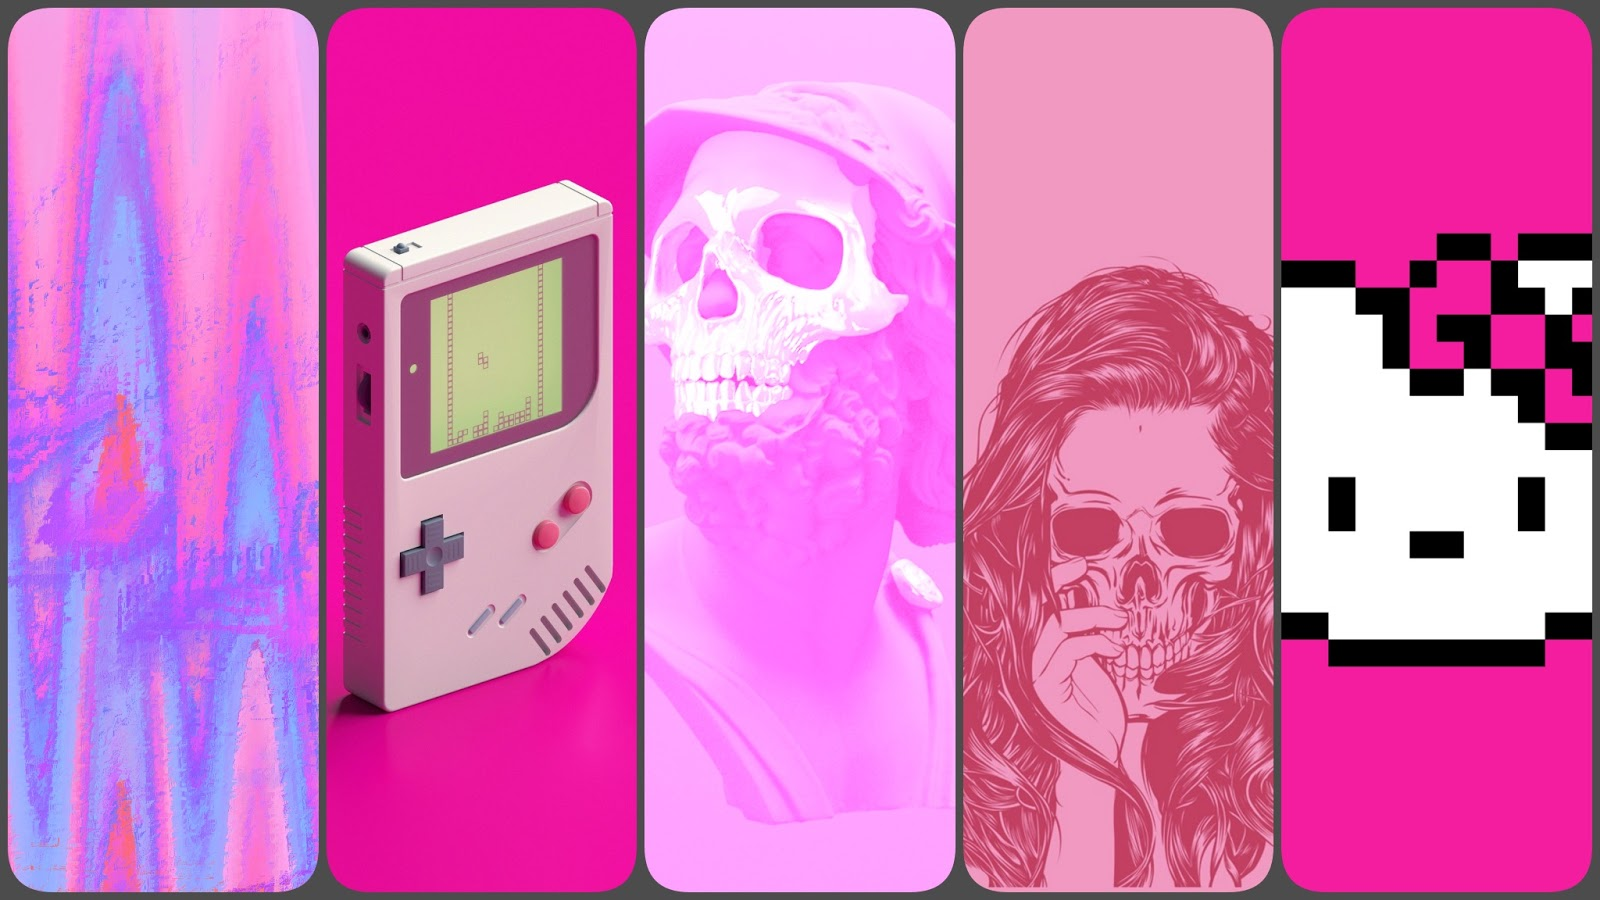 Phone wallpaper collection #pink #aesthetic